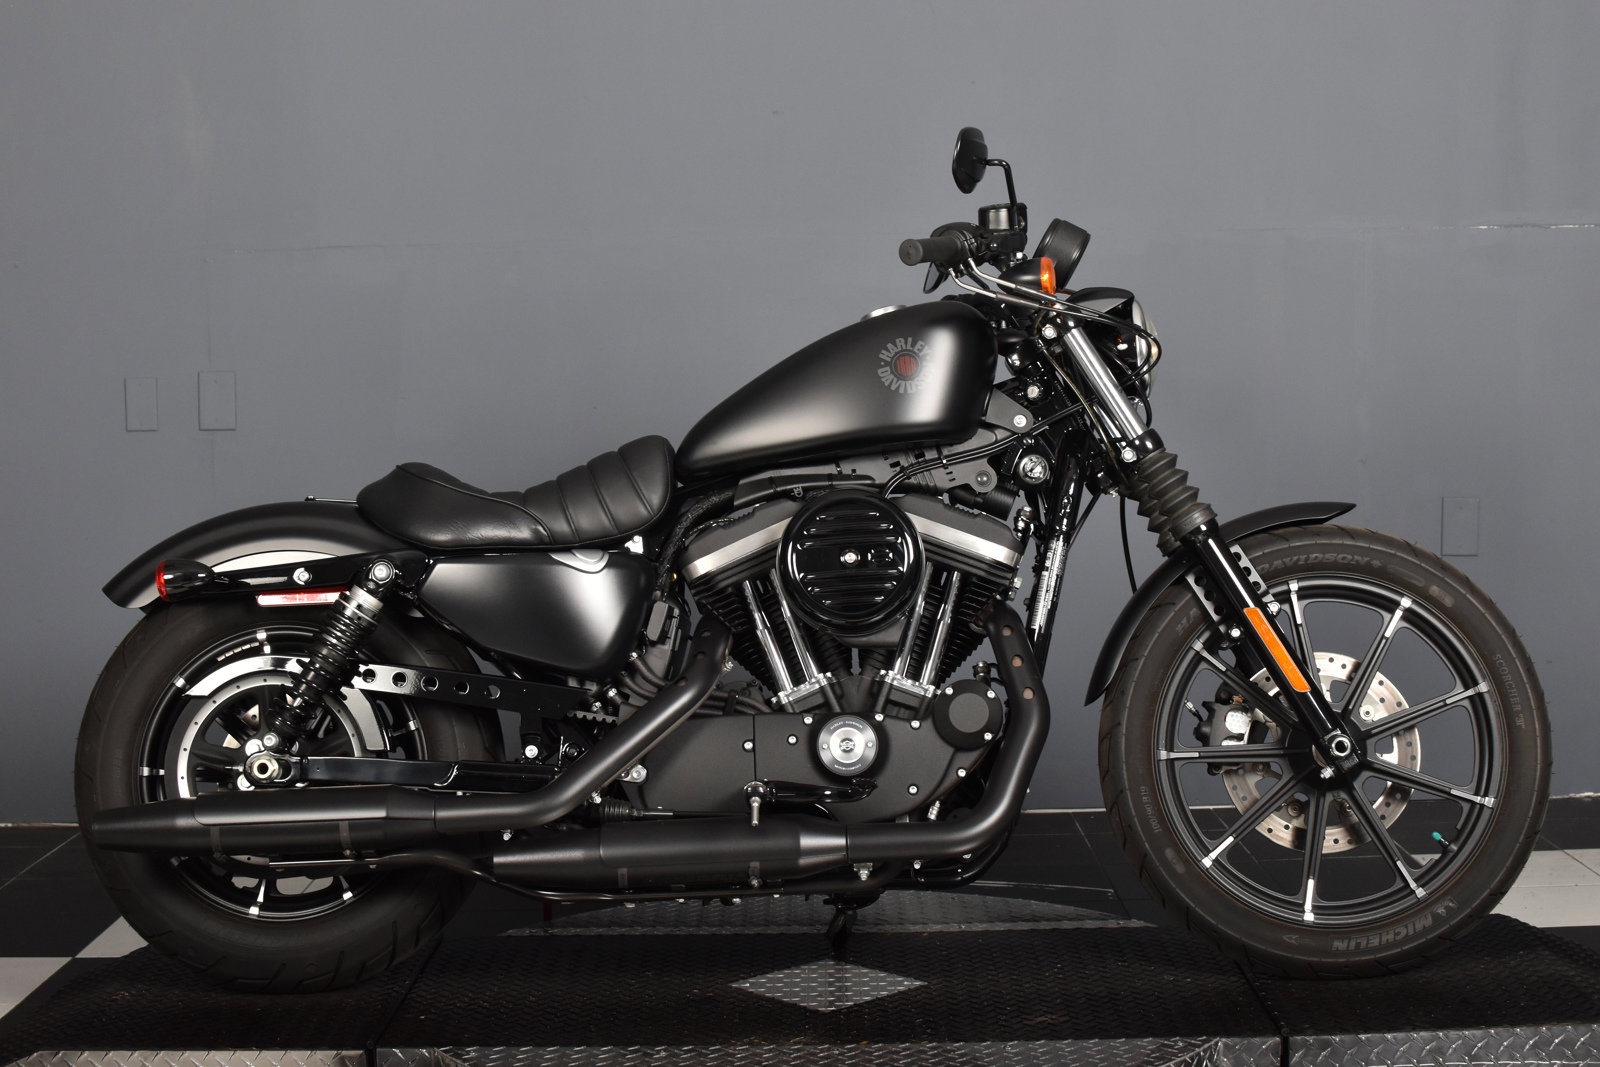 Certified Pre-Owned 2021 Harley-Davidson Sportster Iron 883 XL883N